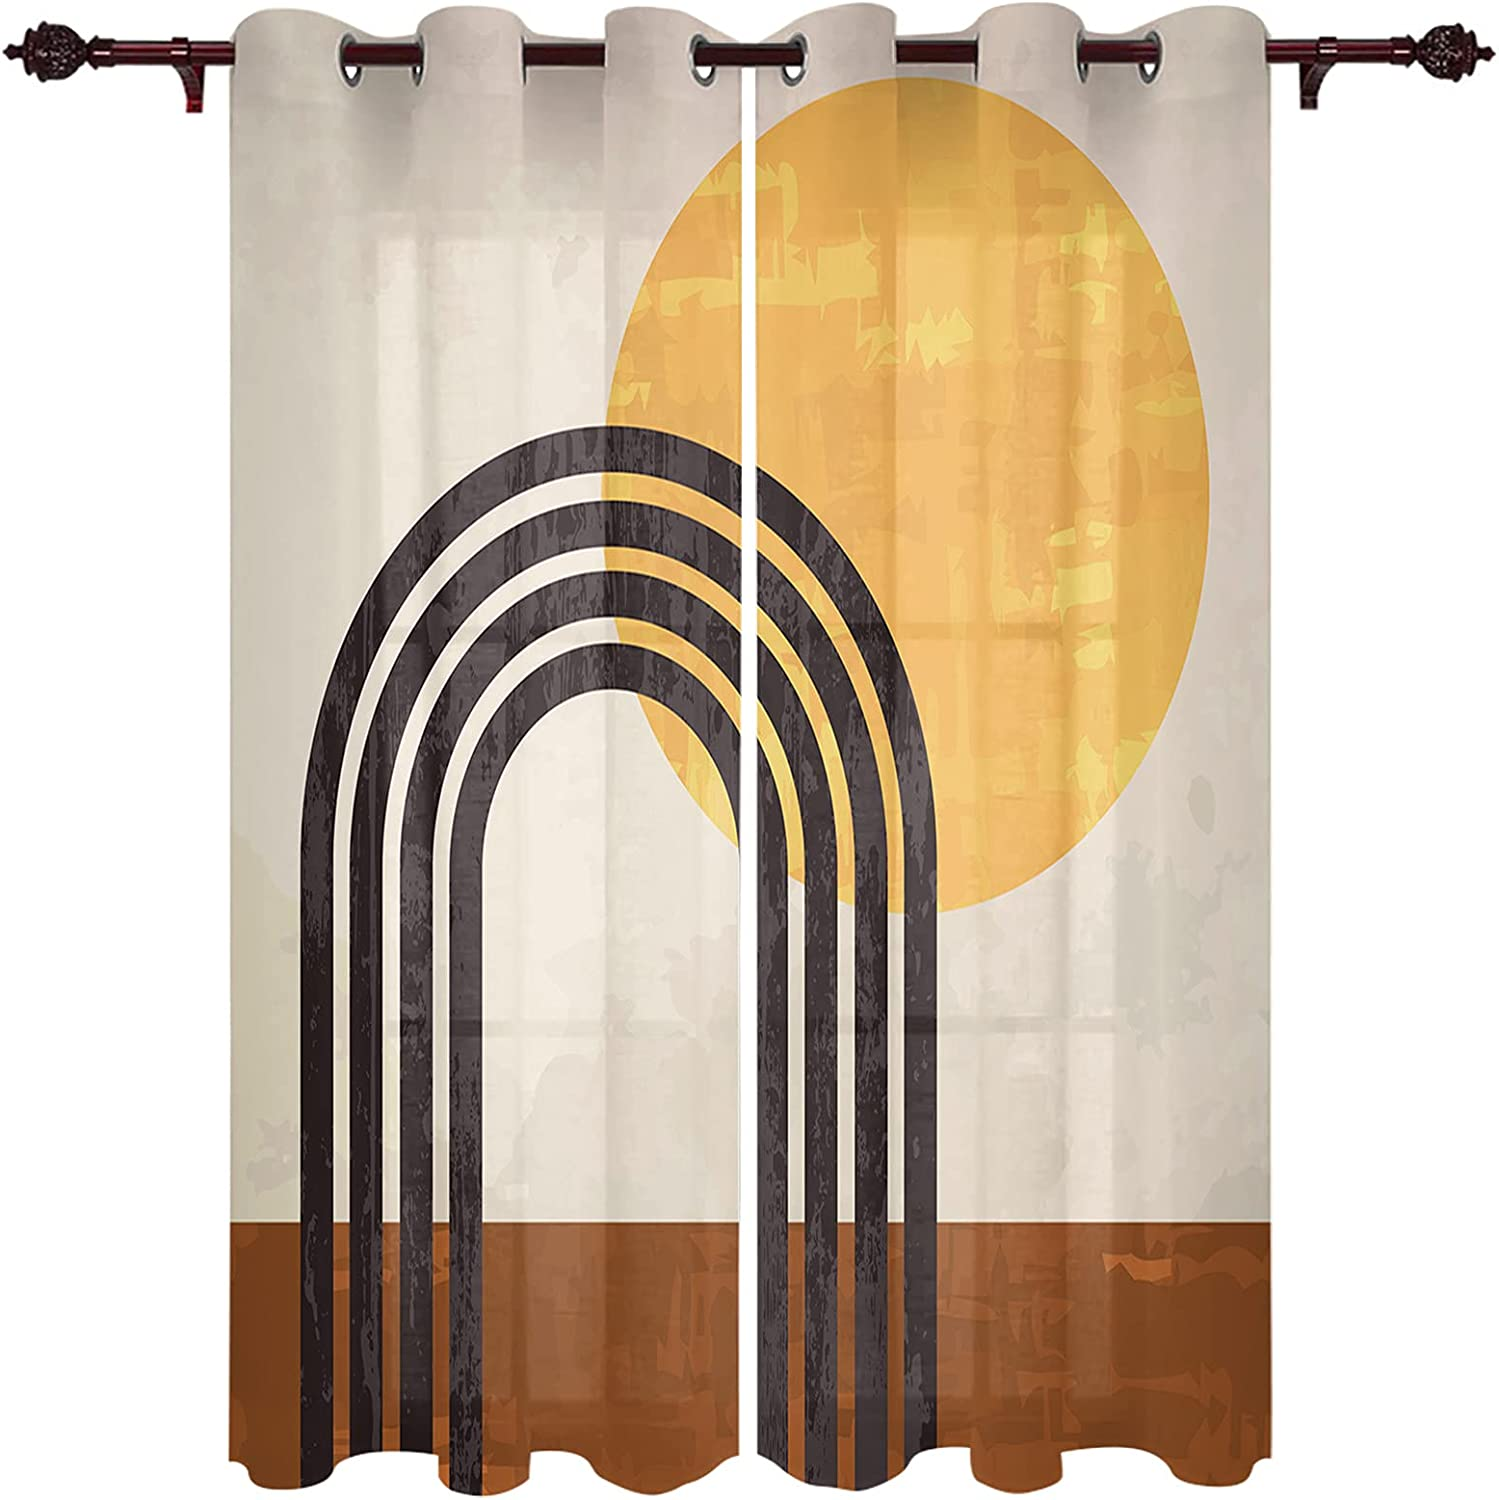 Grommet Window Curtain Aesthetic Terracotta Modern Mid All items in the store Century A Popular shop is the lowest price challenge